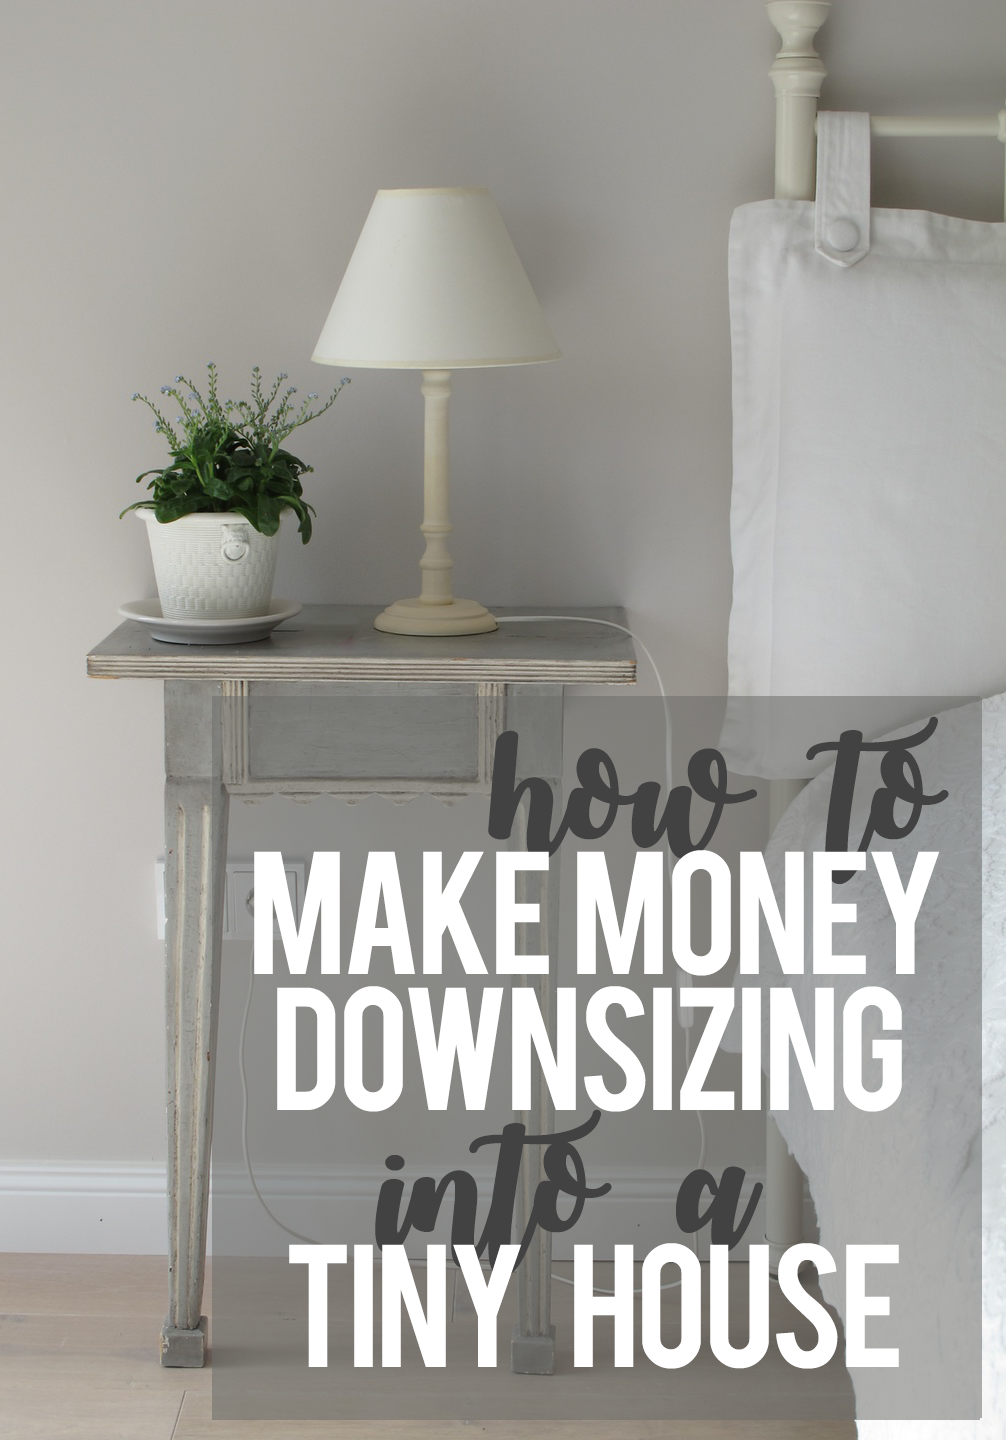 How to use the downsizing process to make money to pay for your tiny house